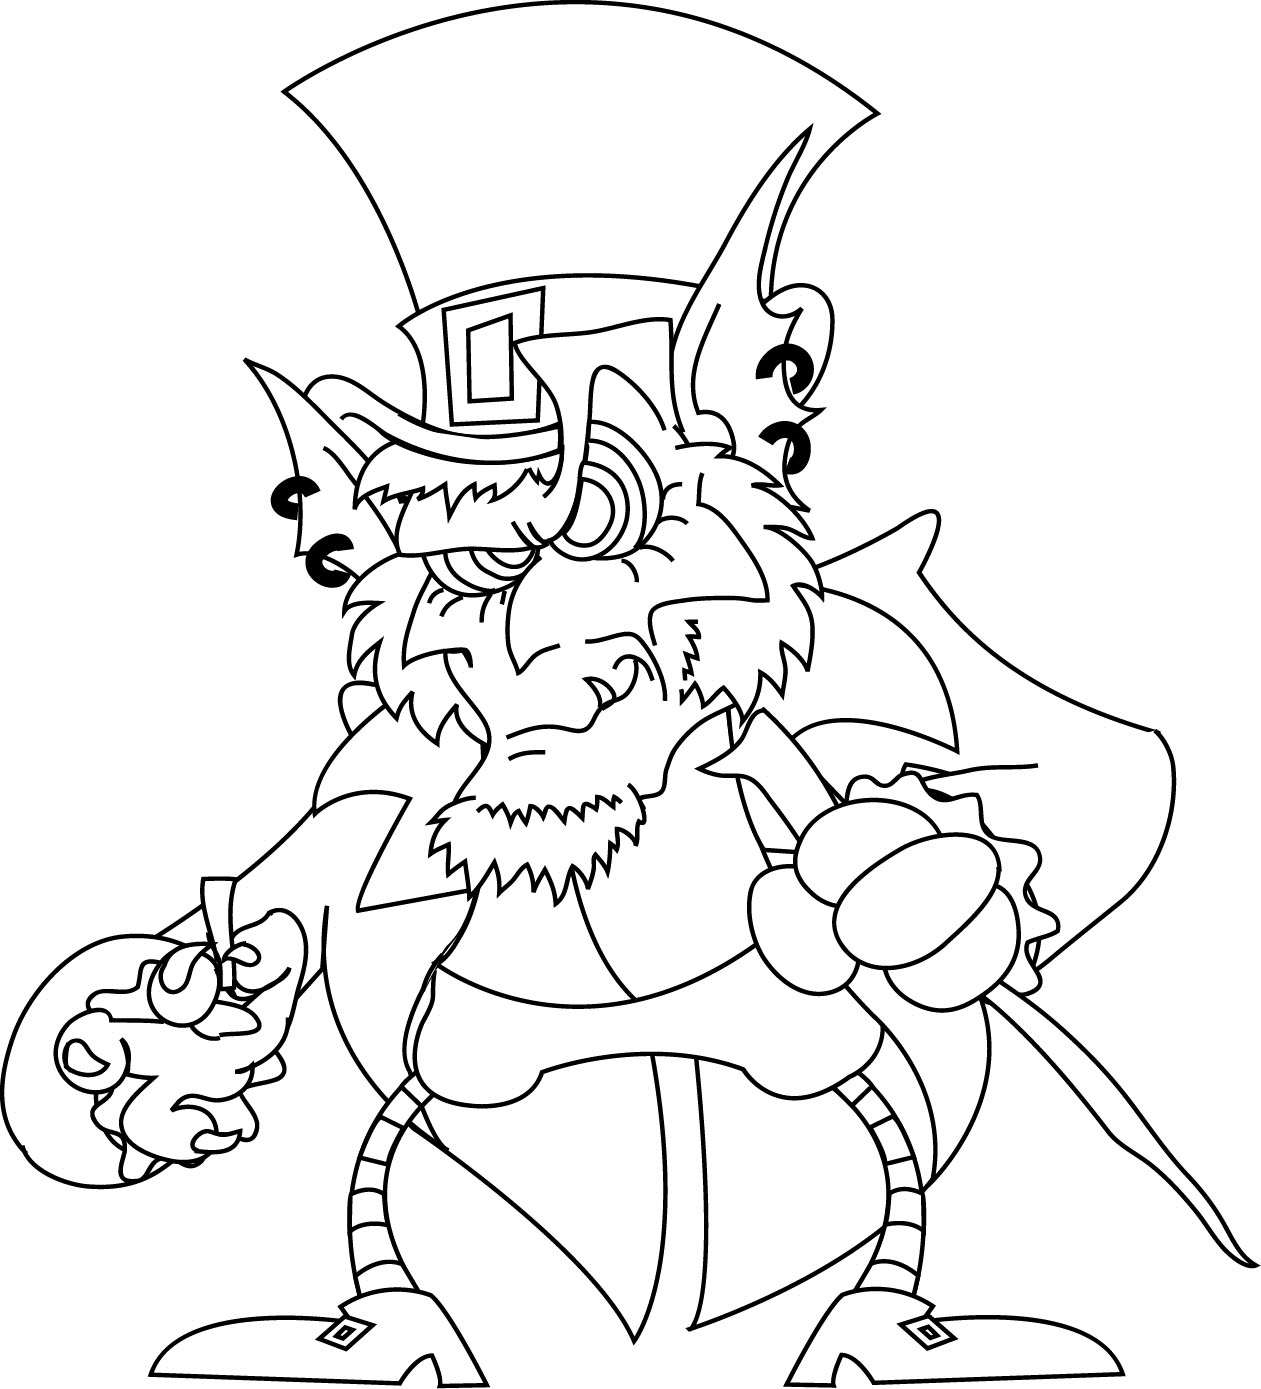 Printable Nutcracker Coloring Pages | Coloring Me